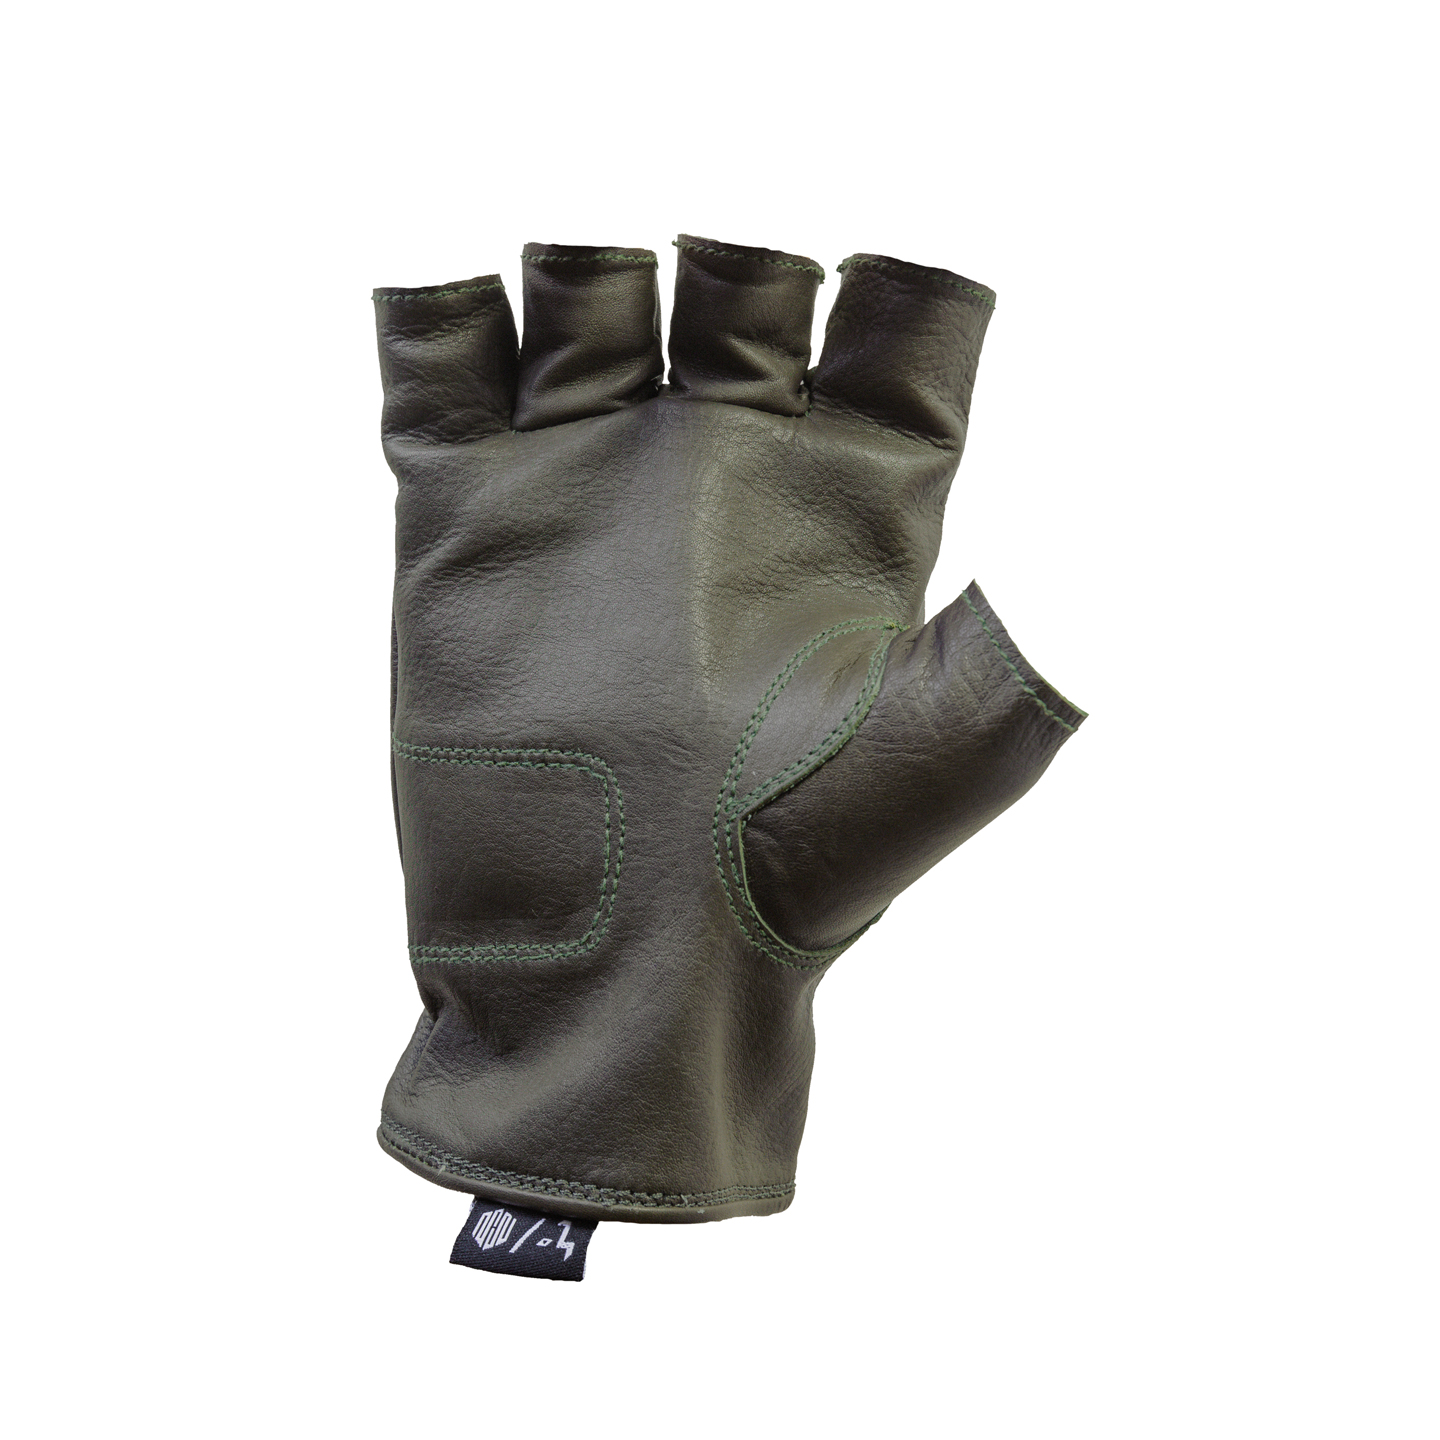 Del Mar Gloves Olive Half